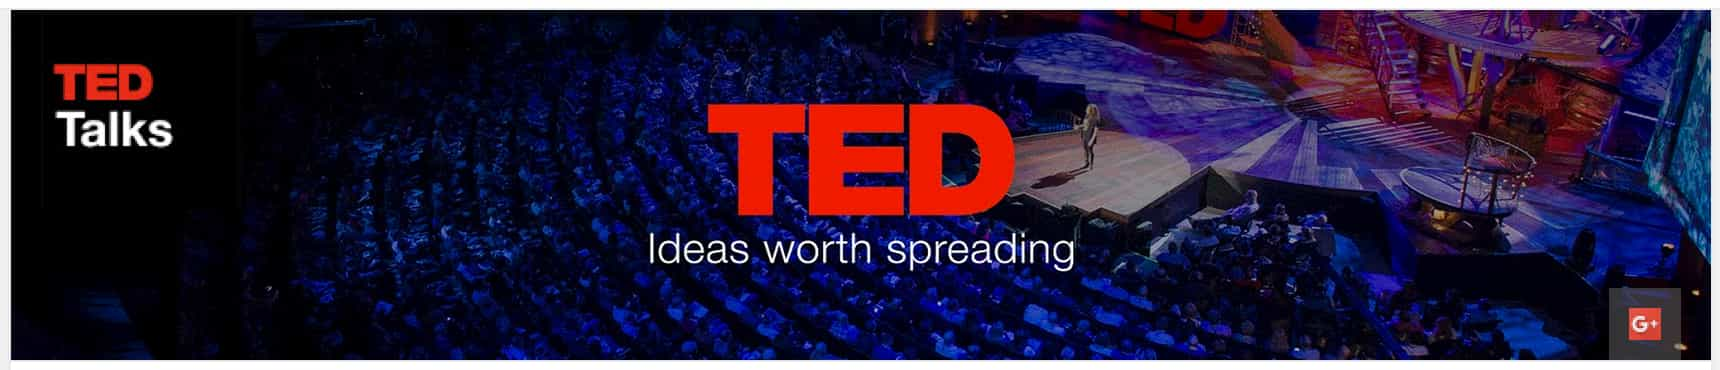 TED YouTube Banner